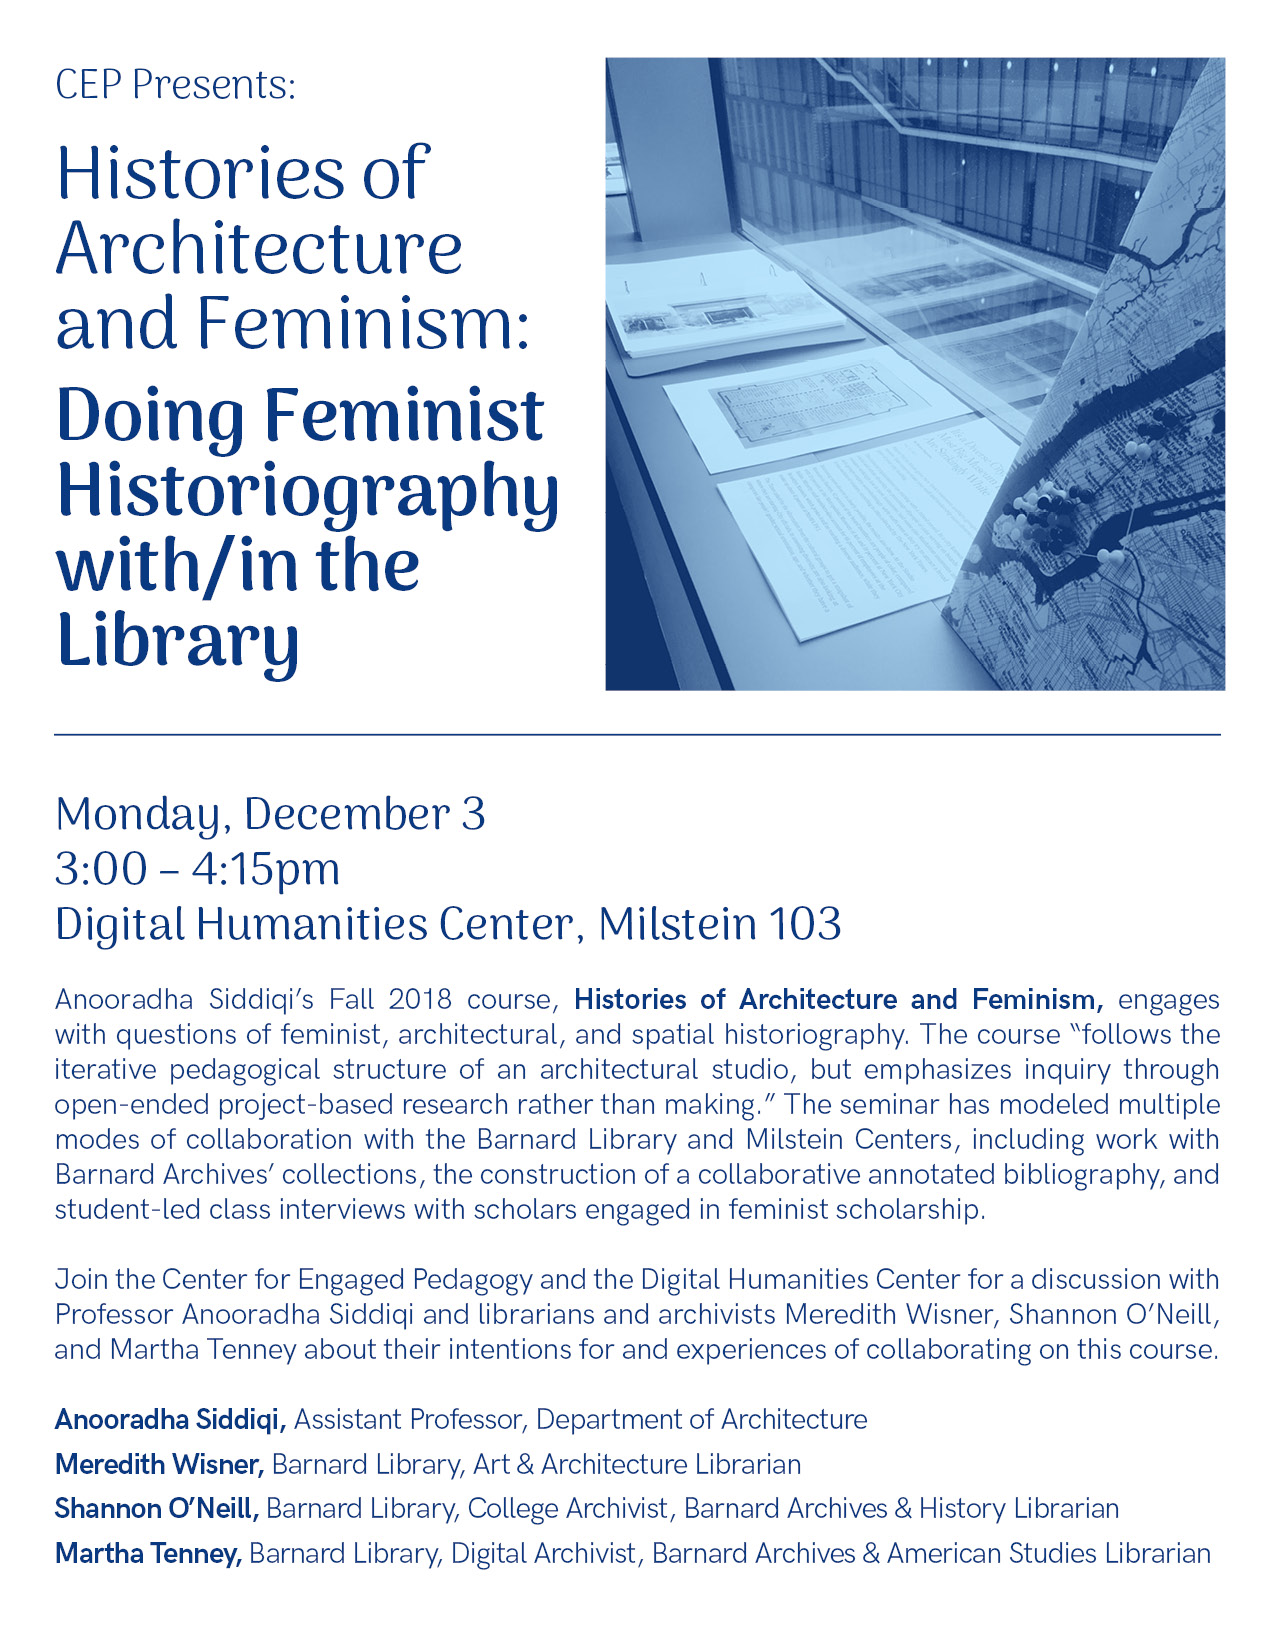 Event Flyer. In the upper right corner there is a photo of archival material and a map of Manhattan, demonstrating one of the class's collaborations with the Barnard Archives.